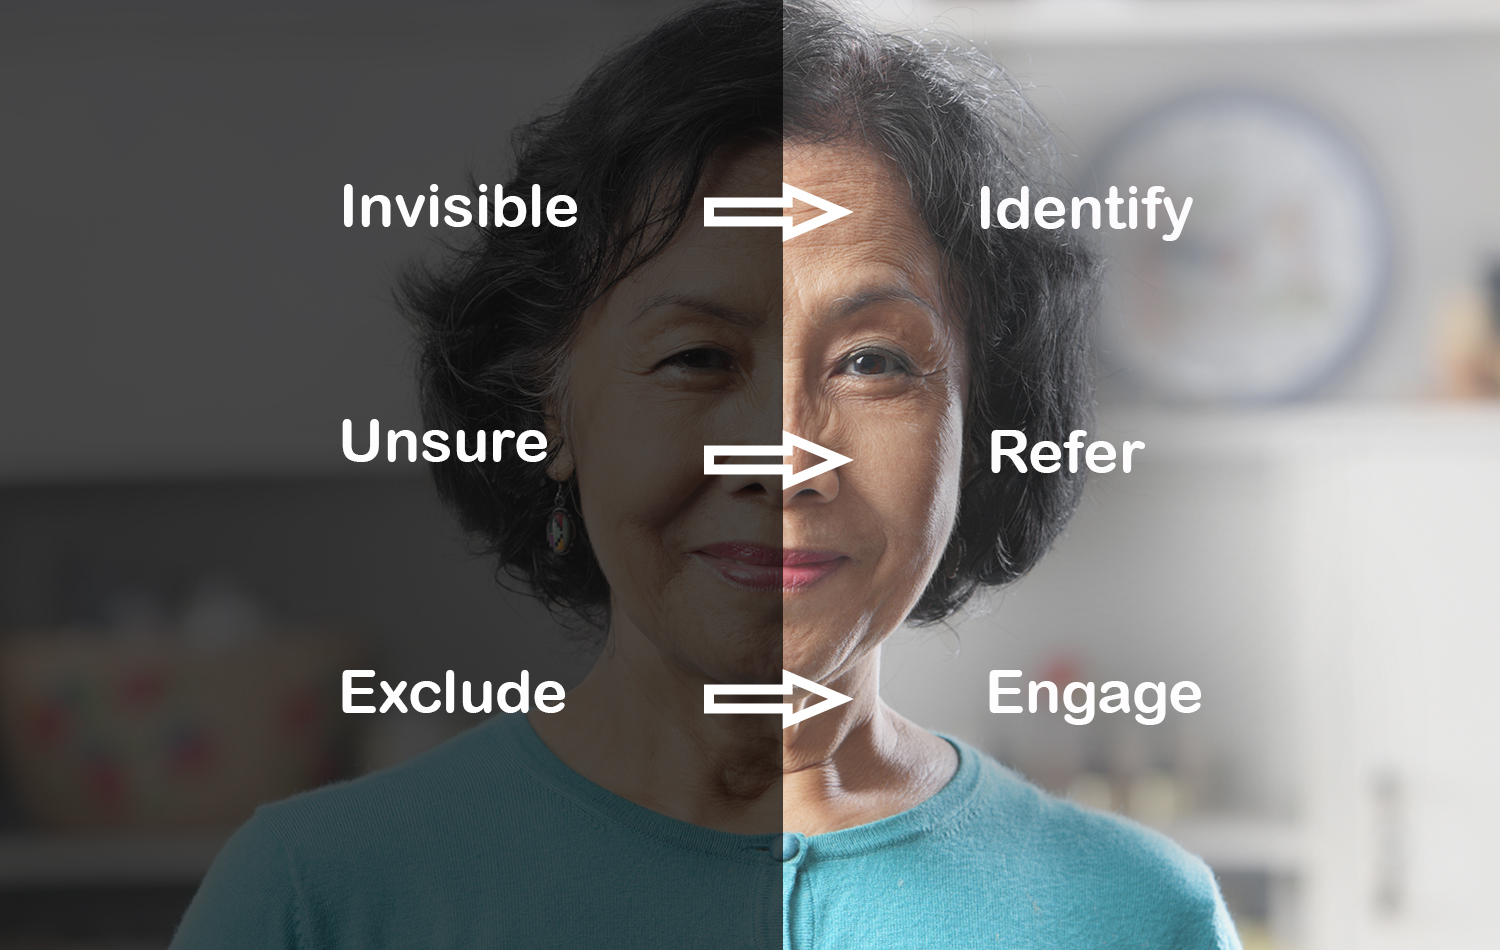 identify refer engage family caregivers